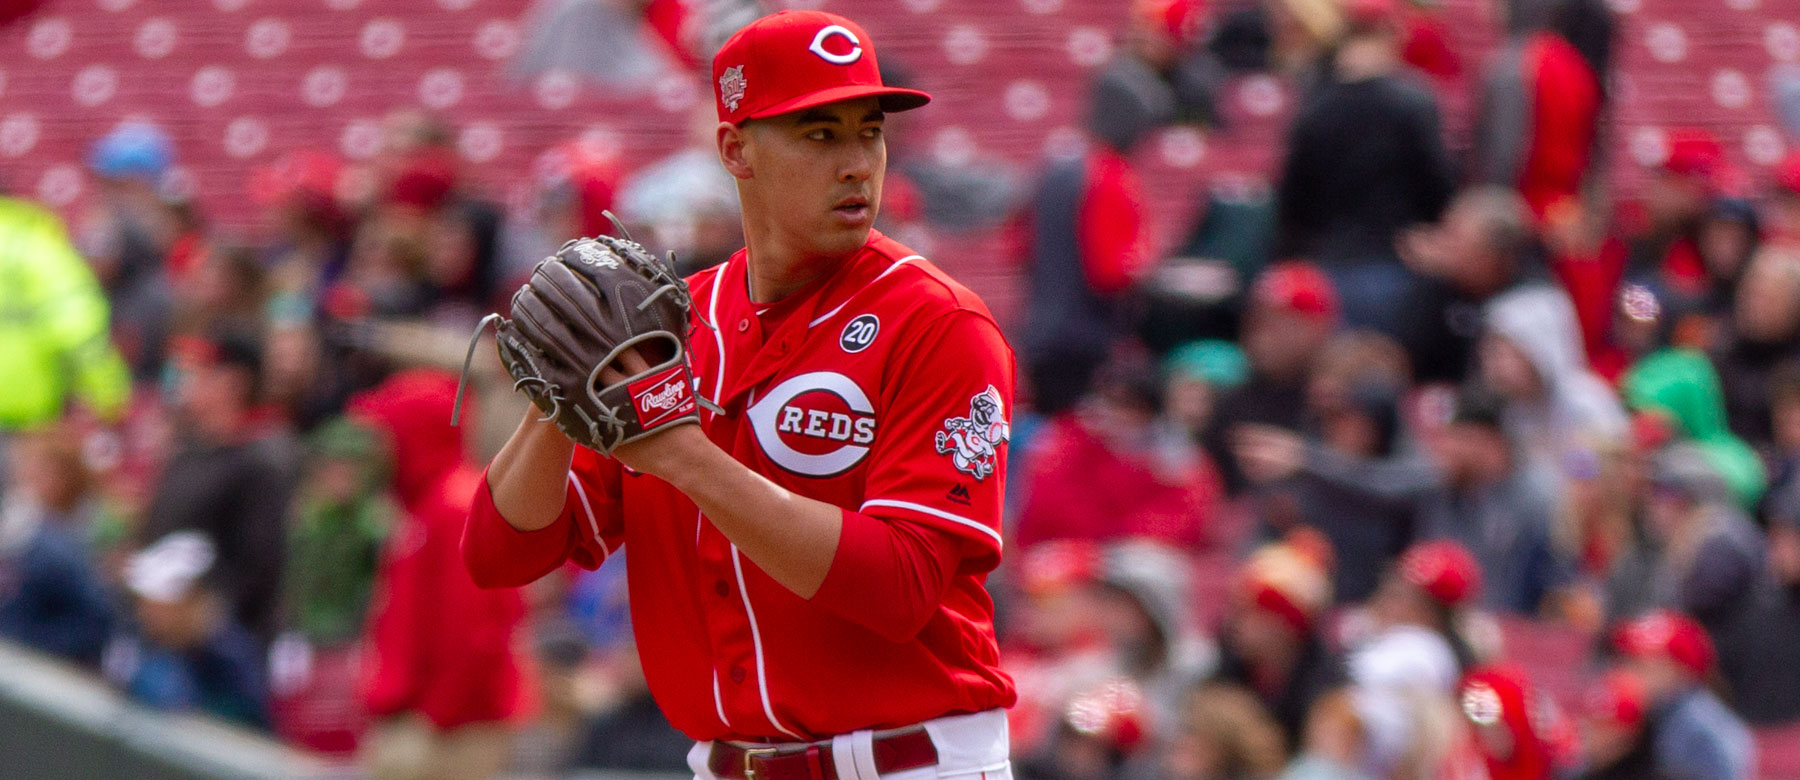 Reds Robert Stephenson to begin rehab in Louisville on Tuesday